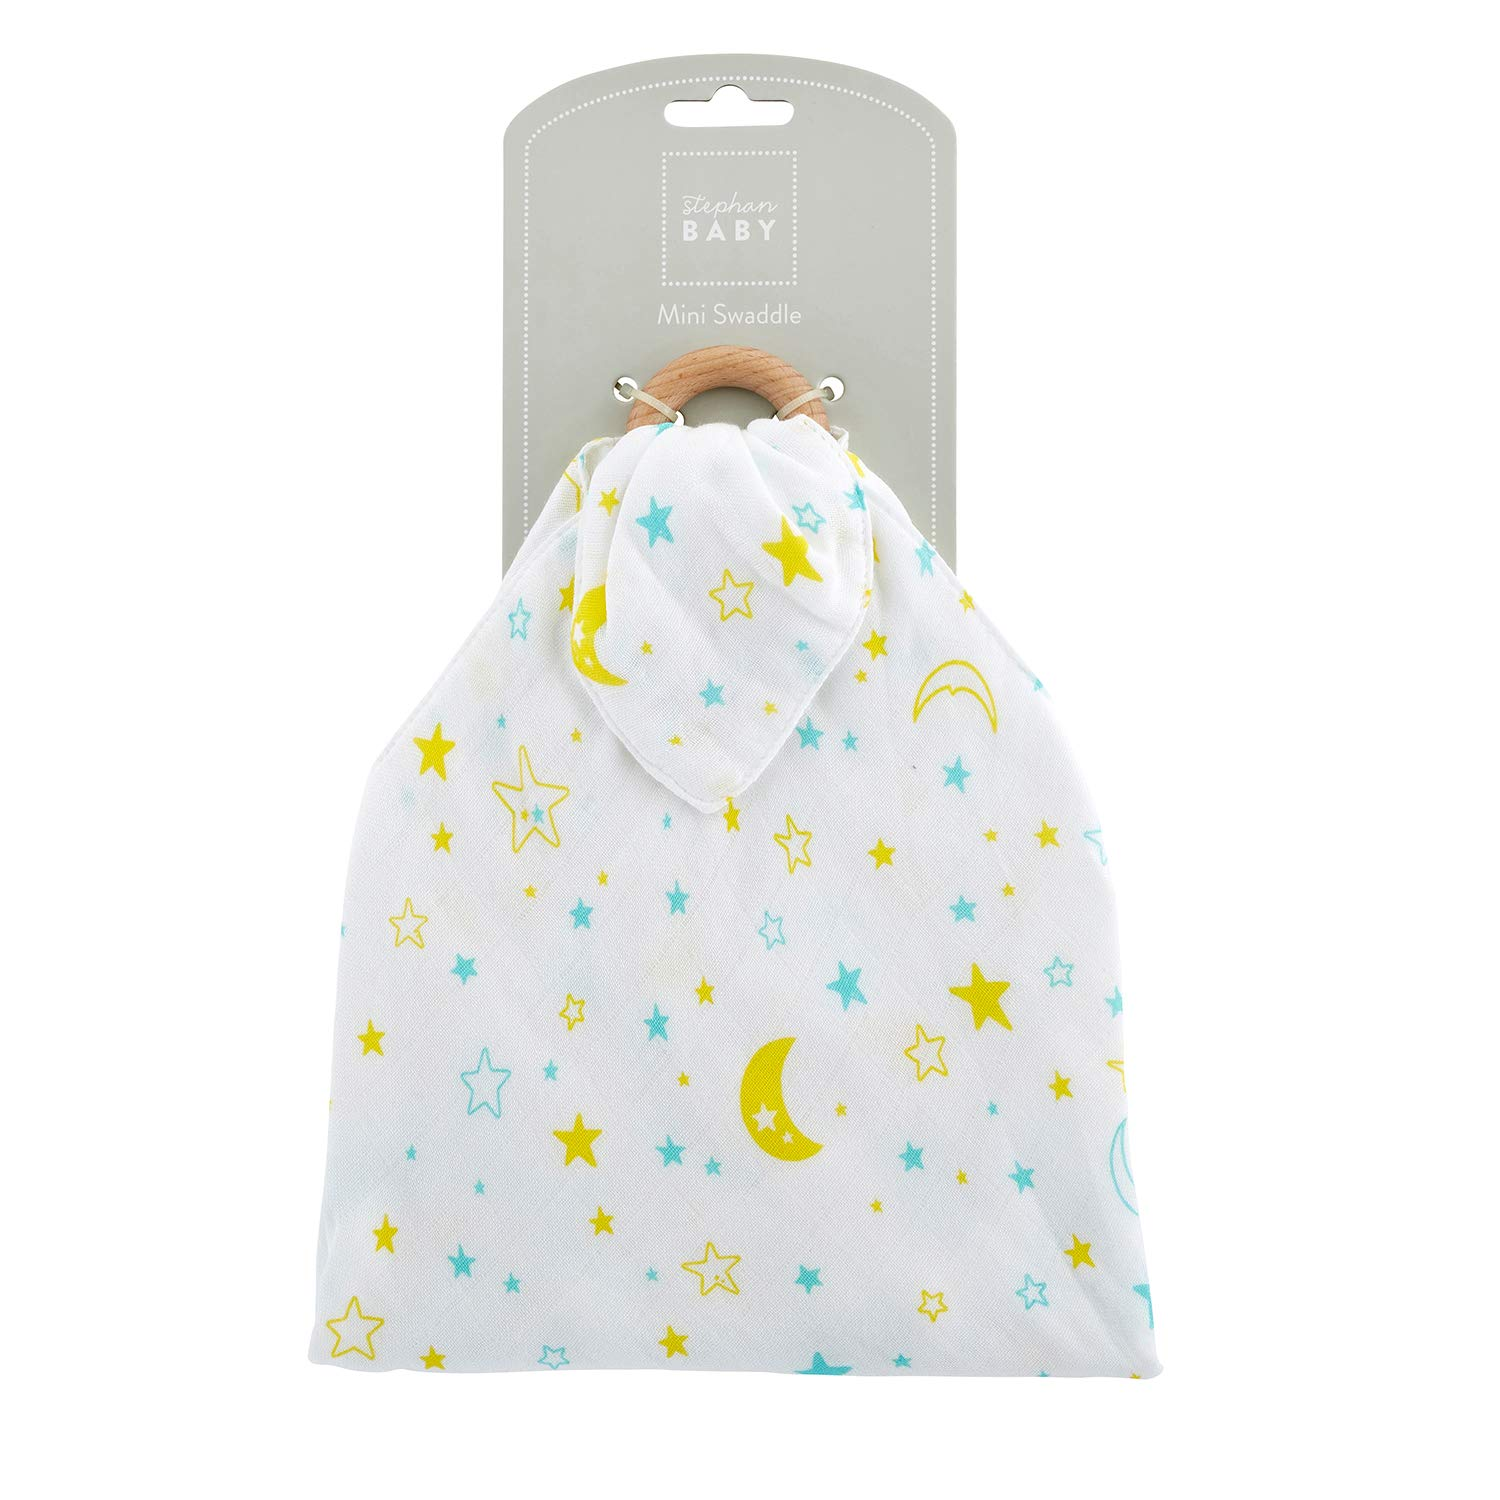 Stephan Baby Viscose Cotton Mini Swaddle with Beechwood Teething Ring Pastel Moons and Stars Available in 4 Designs